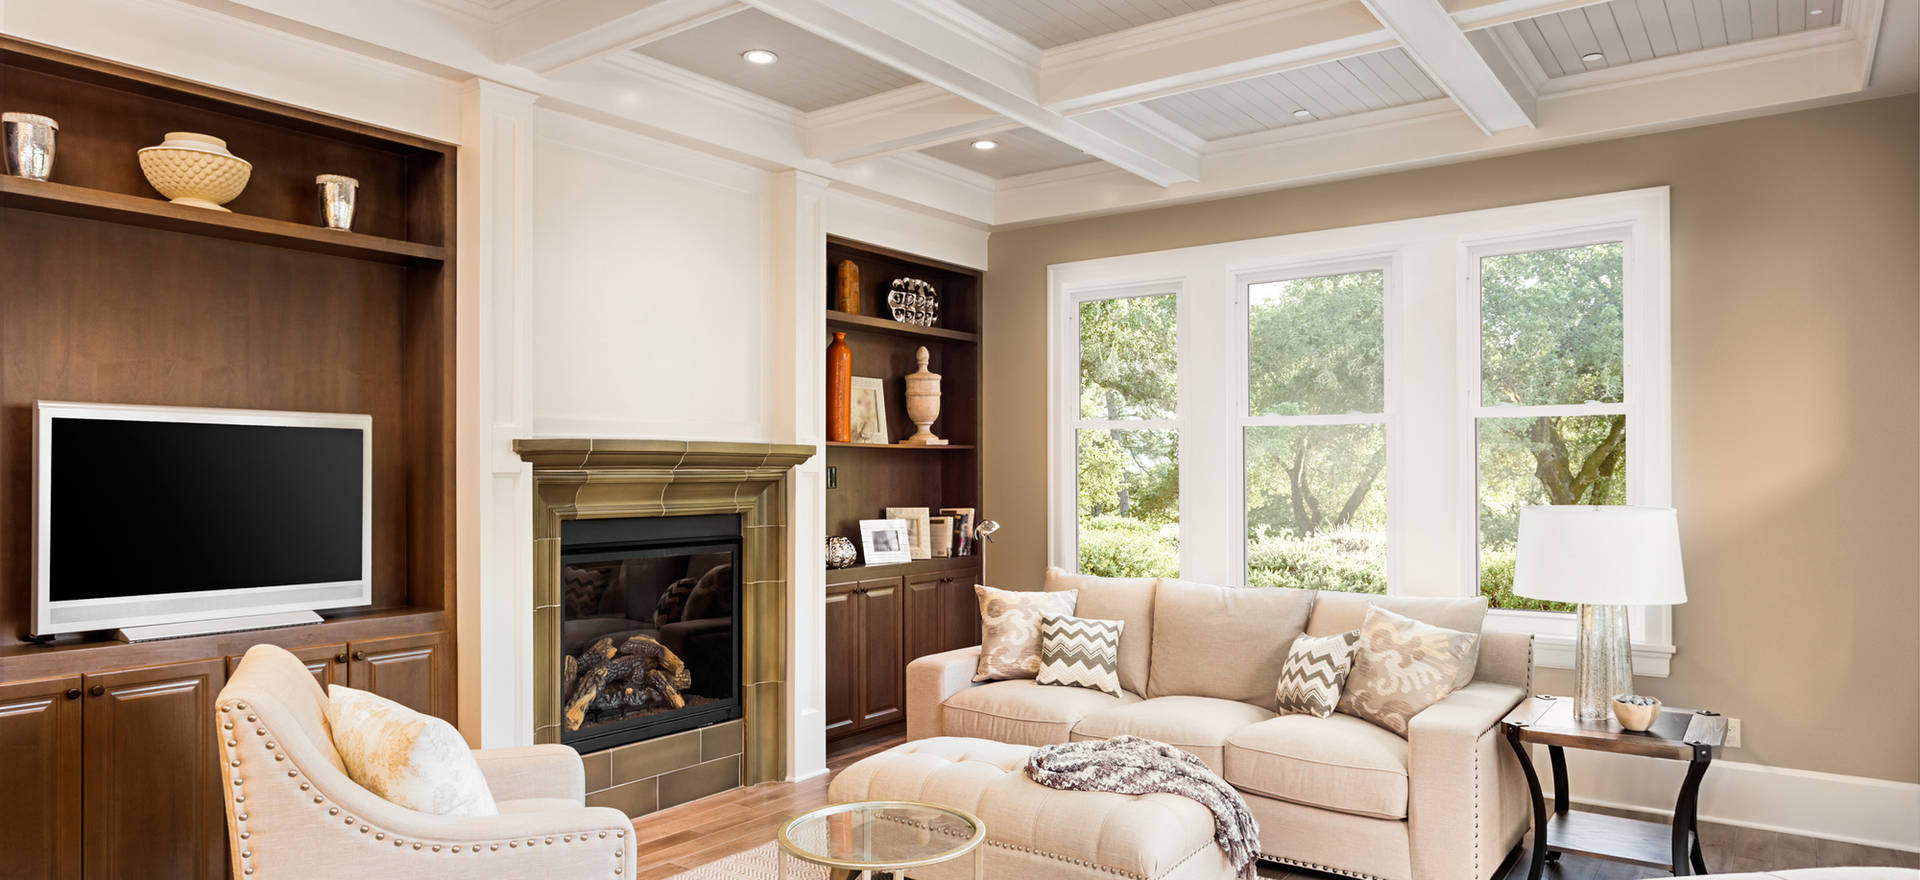 Double Hung Windows - Mulled - Living Ro